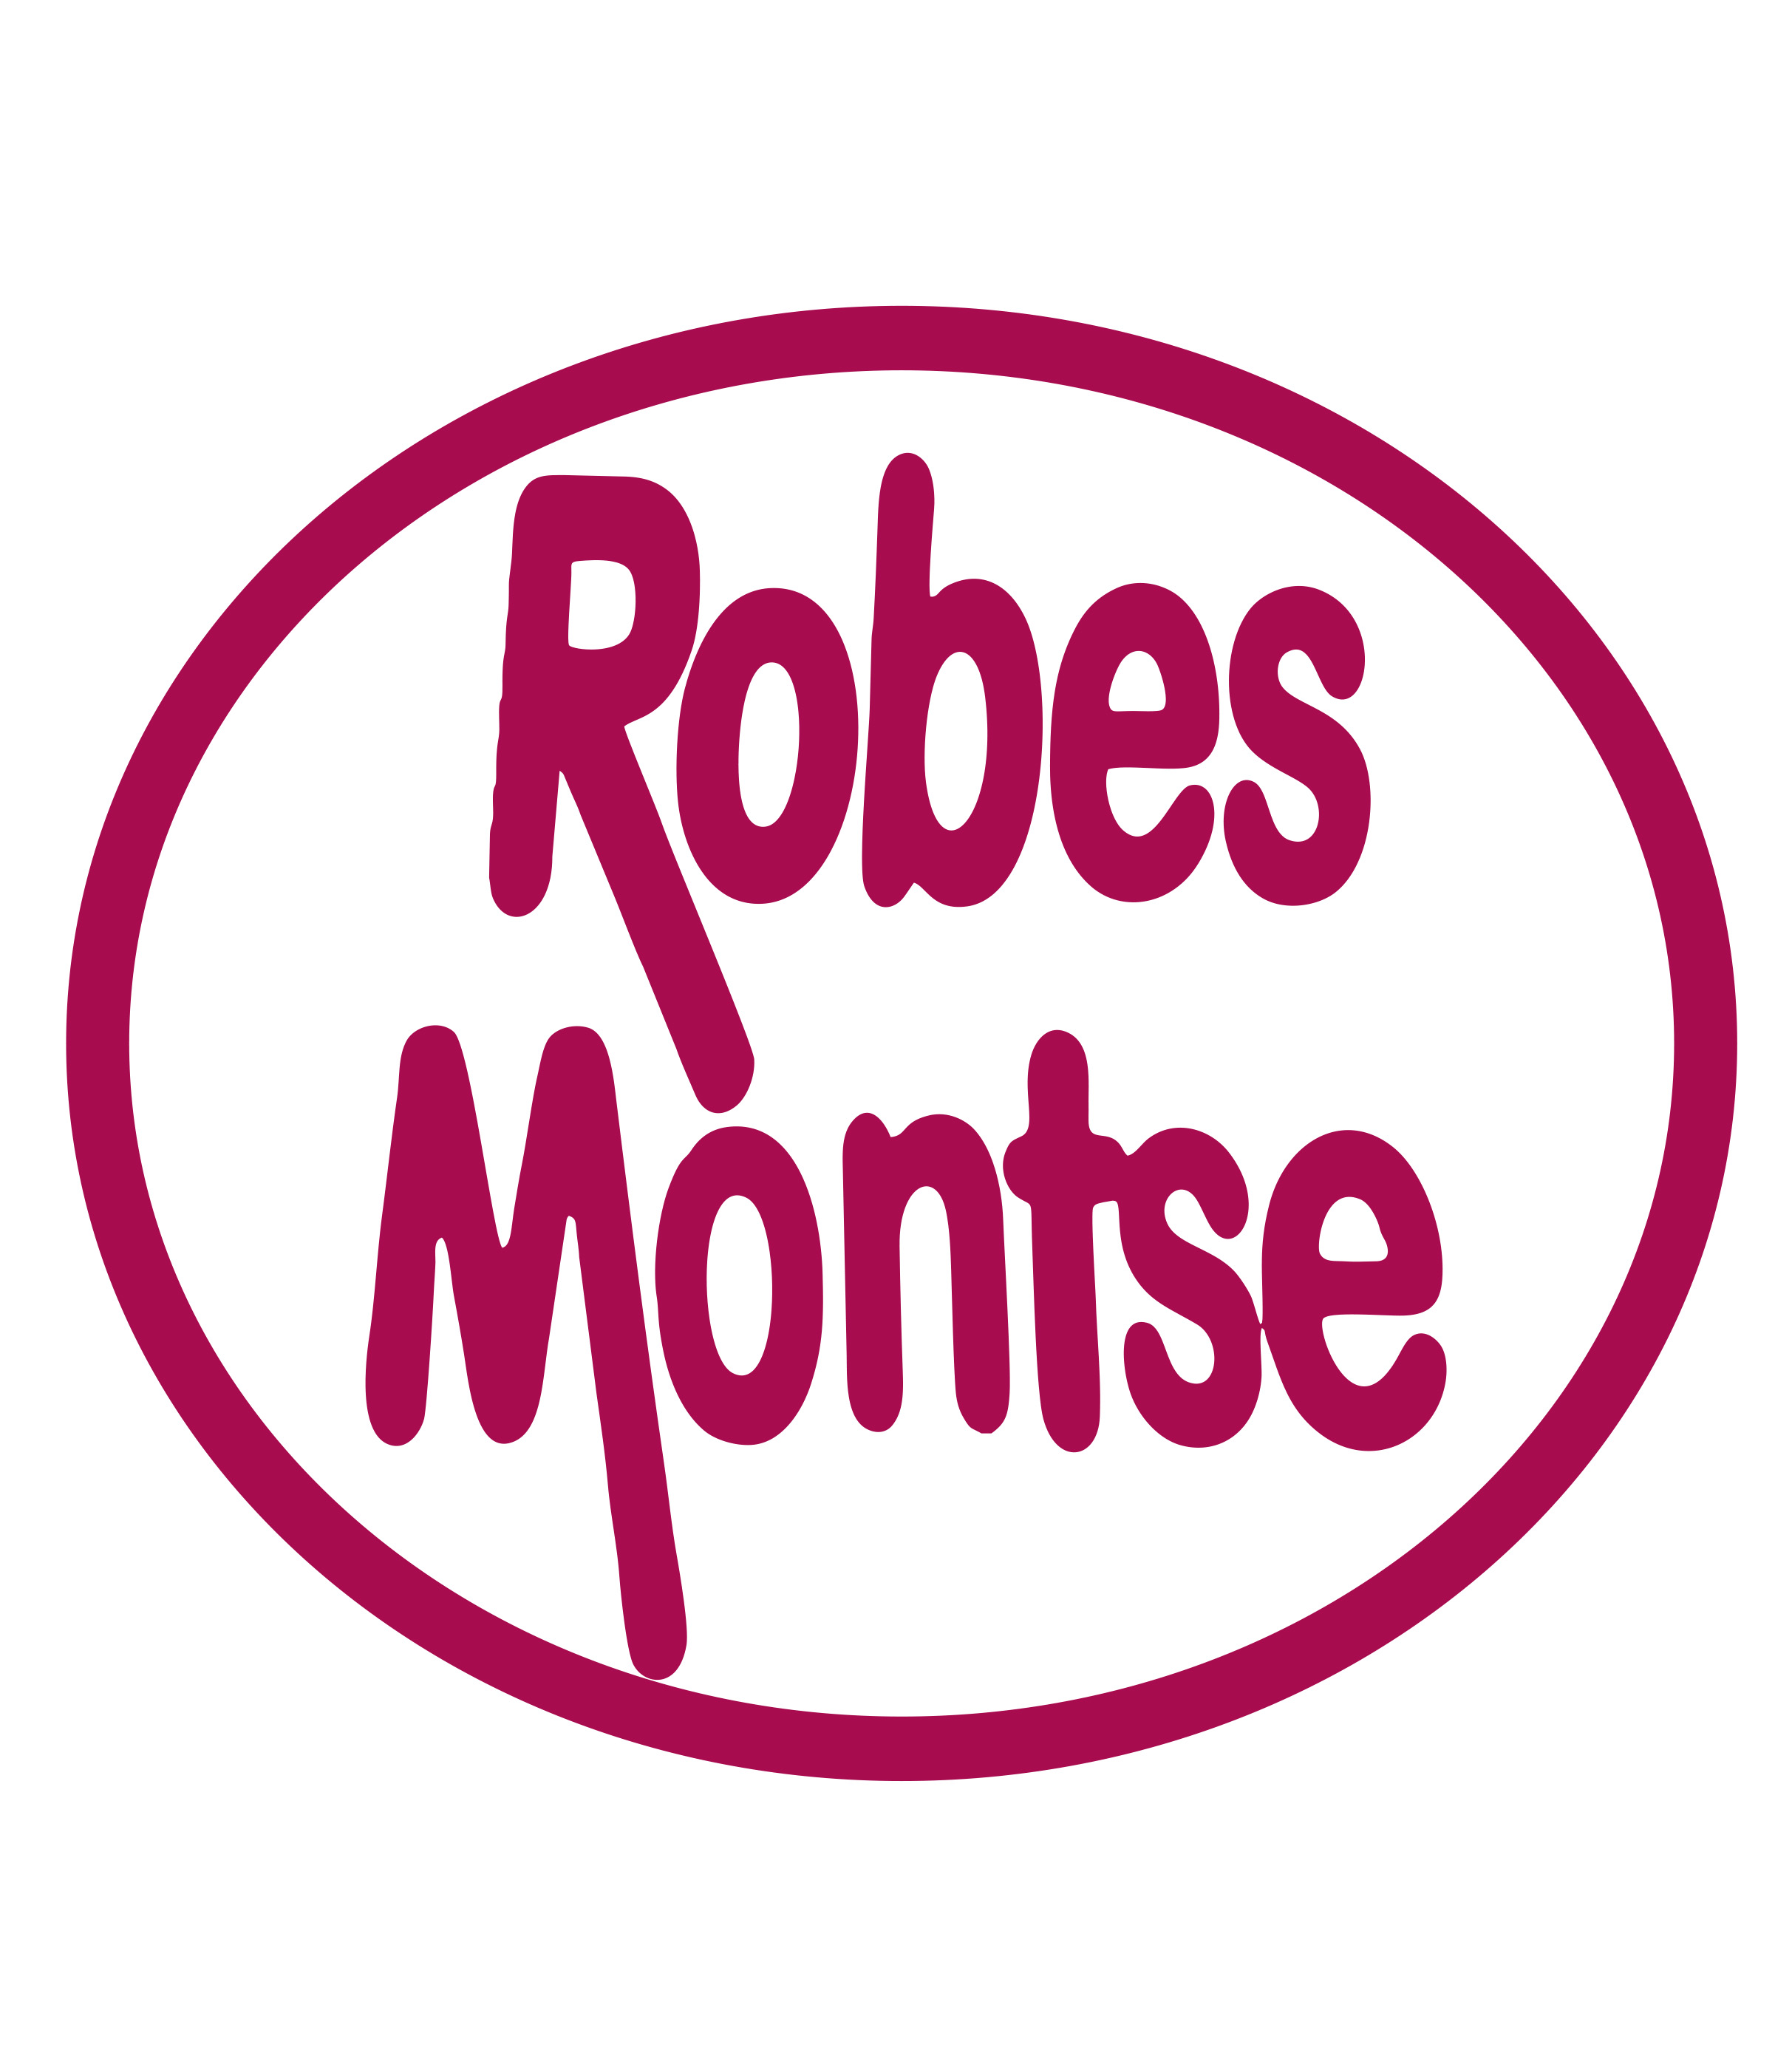 ROBES MONTSE